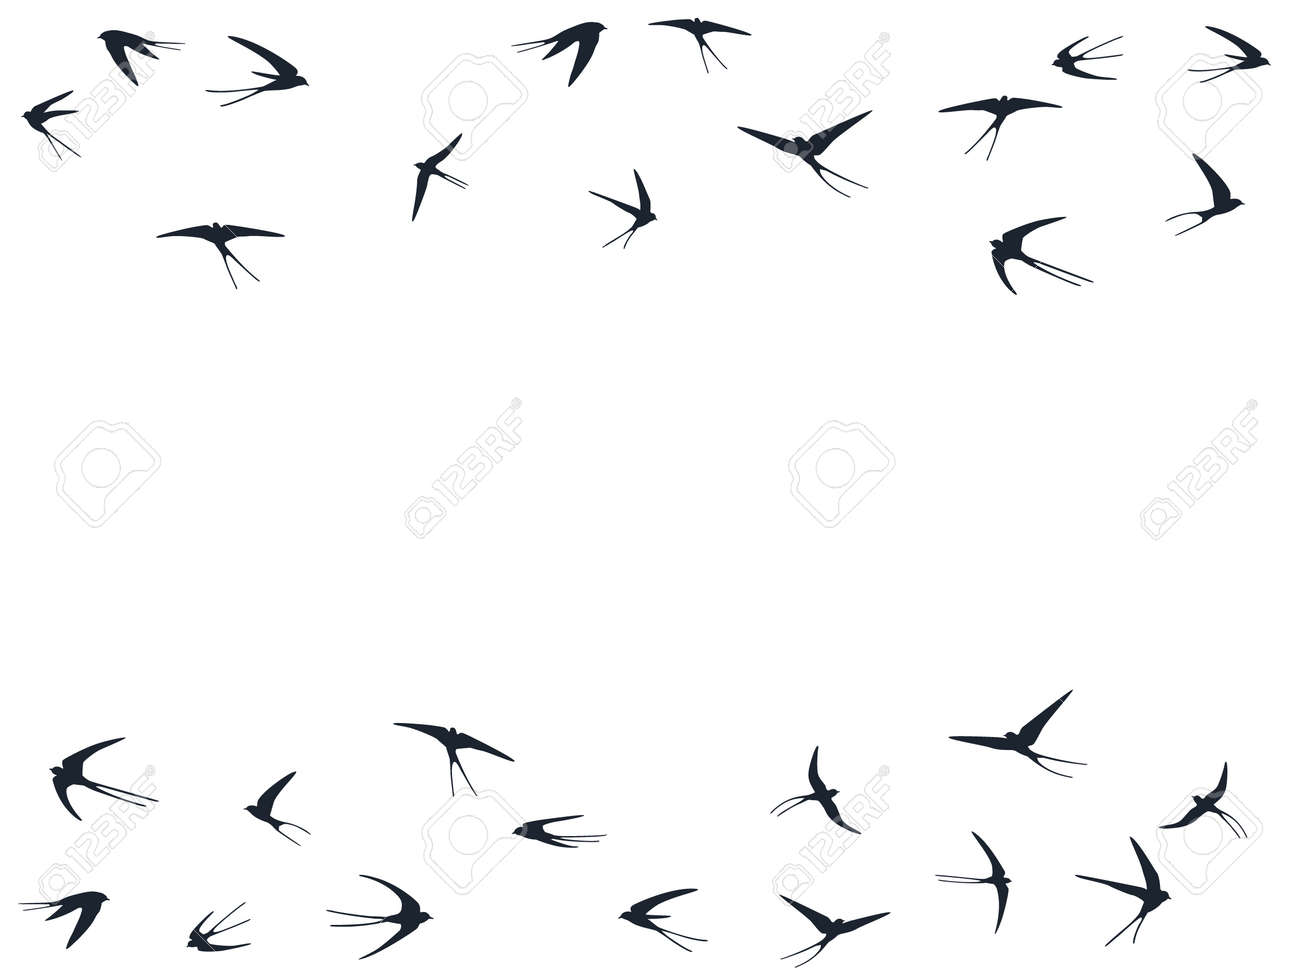 Flying martlet birds silhouettes vector illustration. Nomadic martlets school isolated on white. Winged flying swallows line art. Little birds in sky graphic design. Fauna background. - 158872932